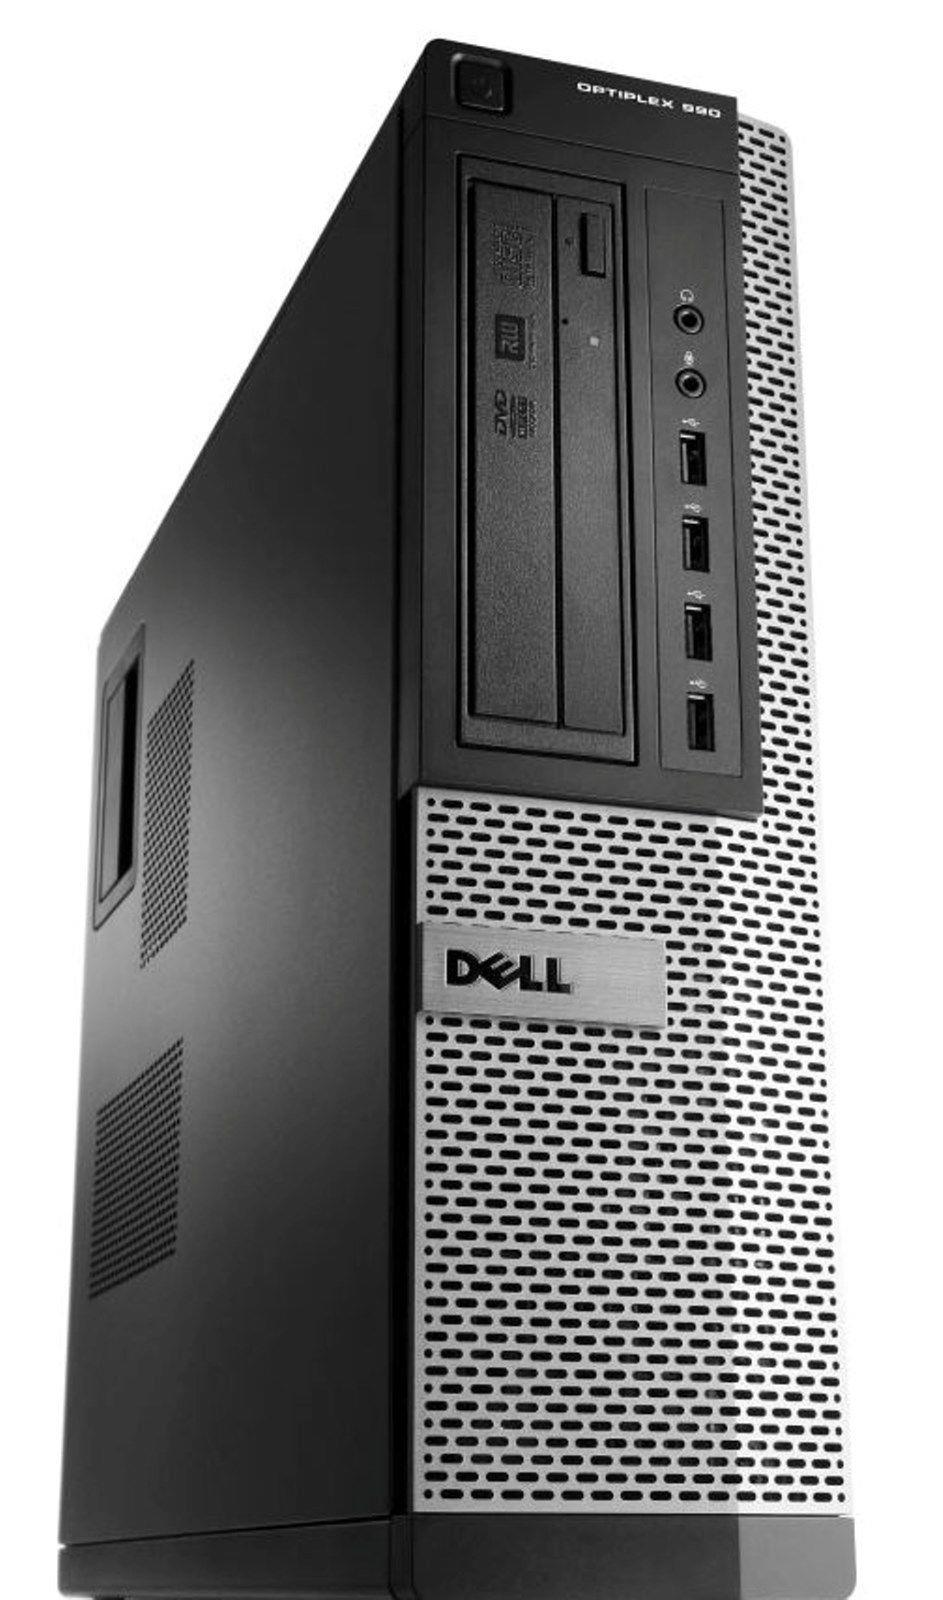 Dell Optiplex 990 Desktop Tower Core i5 2400 2GB 250GB GST System PC